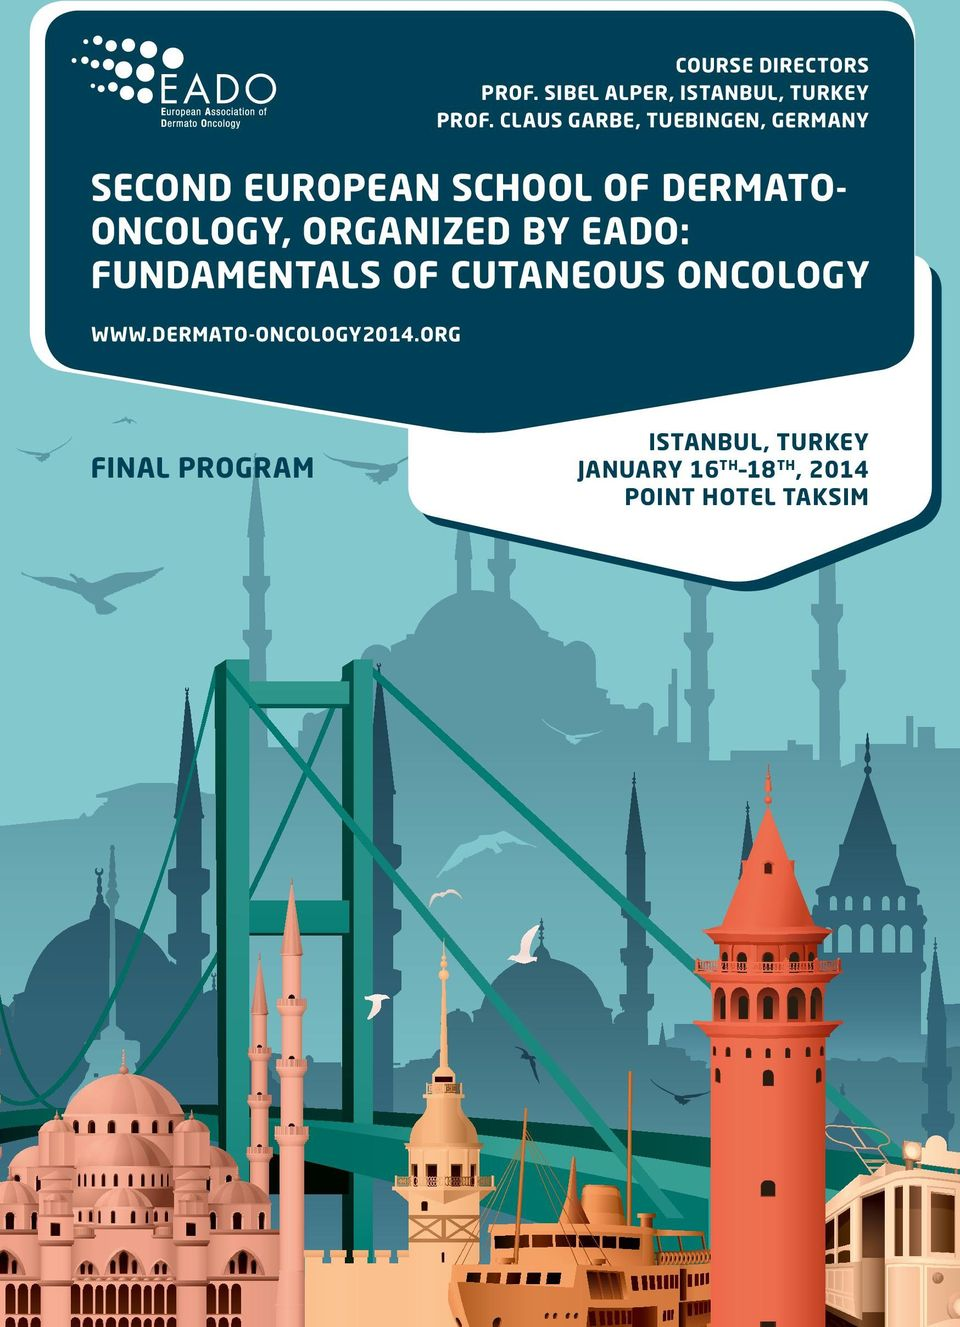 Oncology, organized by EADO: Fundamentals of cutaneous oncology www.